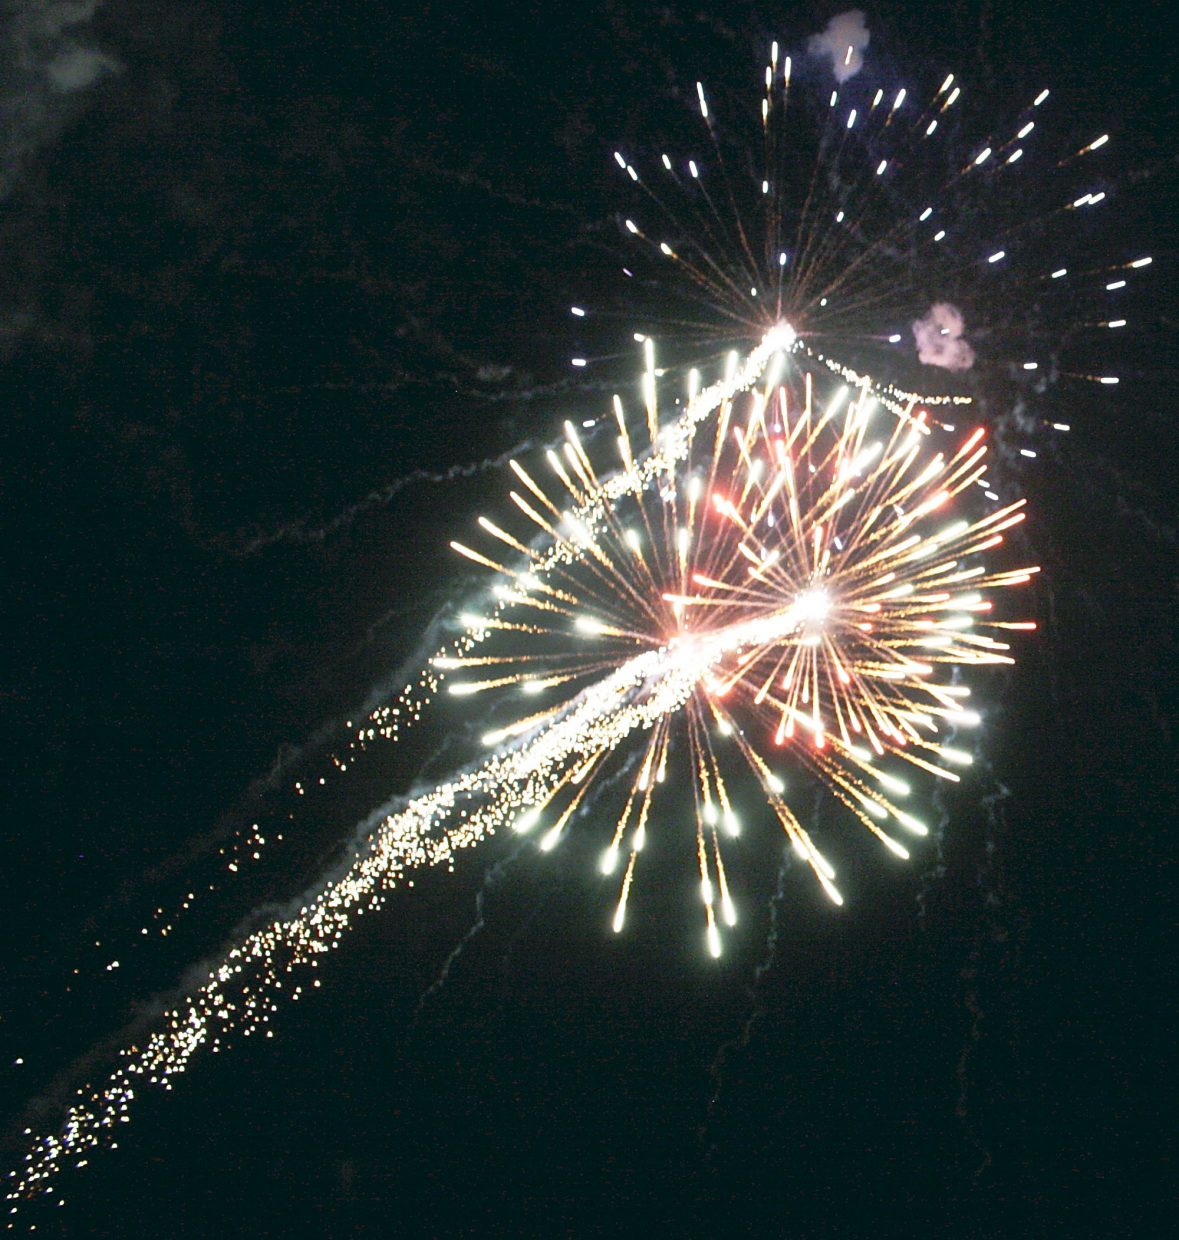 Fireworks bring the opening night of the 46th annual Silt HeyDays to a close Friday. Earlier in the week, town officials noted that this was the first time the town had fireworks, for this event or any other, in decades. The fireworks went off without any noticeable problems.